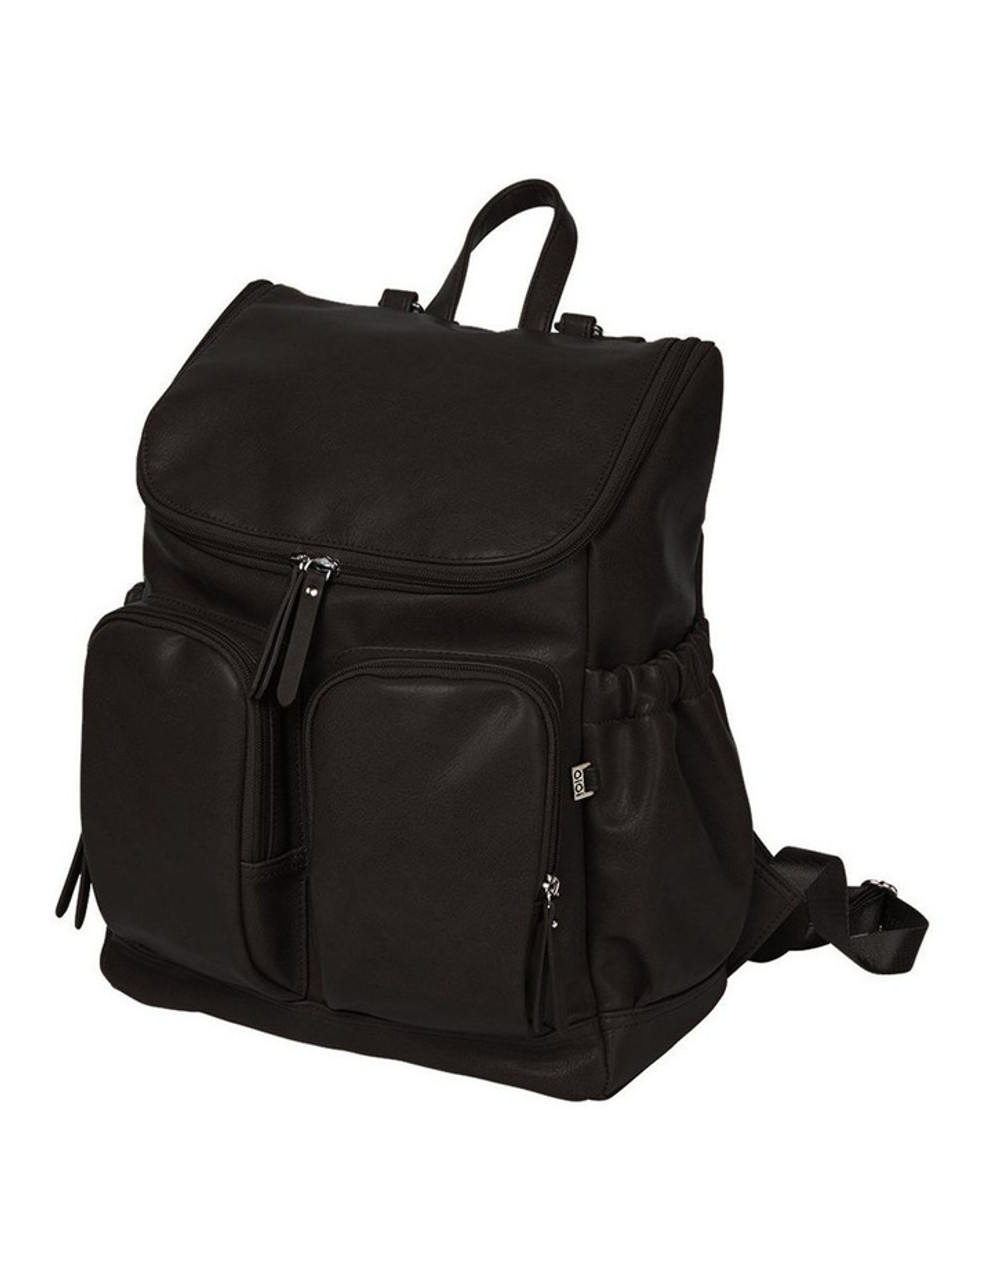 OiOi Faux Leather Nappy Backpack BLACK at Baby Barn Discounts